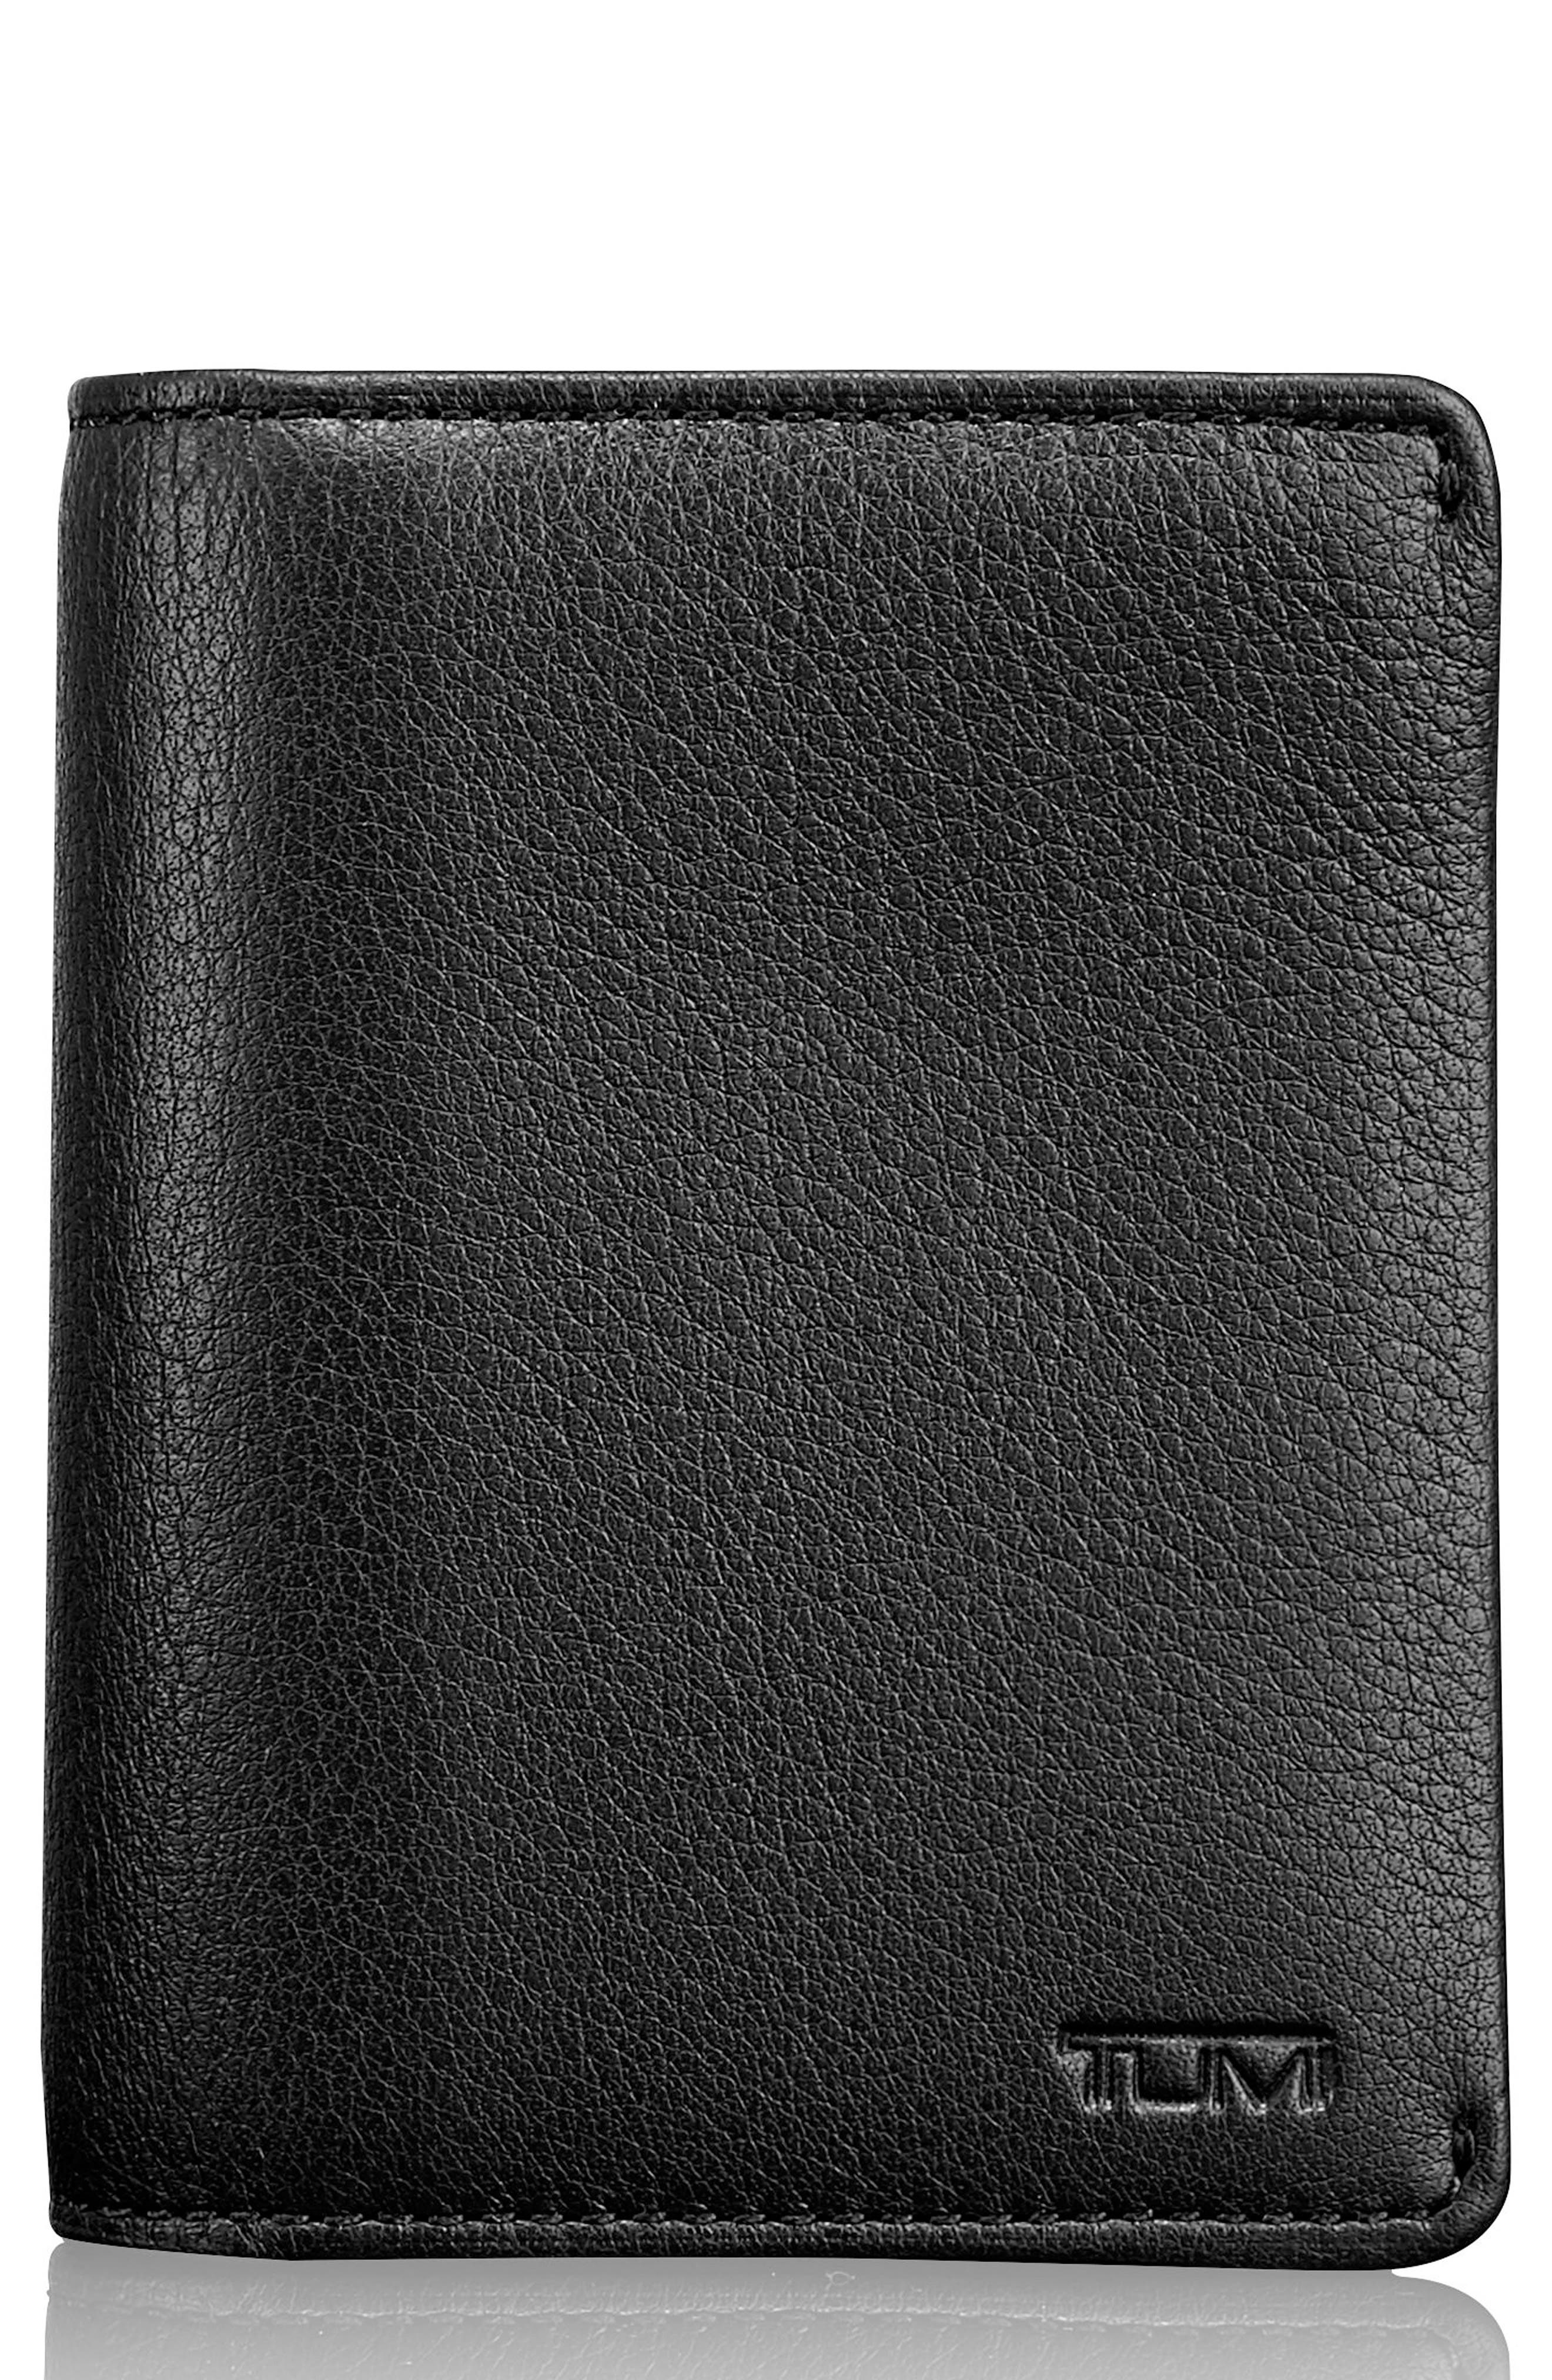 Main Image - Tumi Leather RFID Card Case